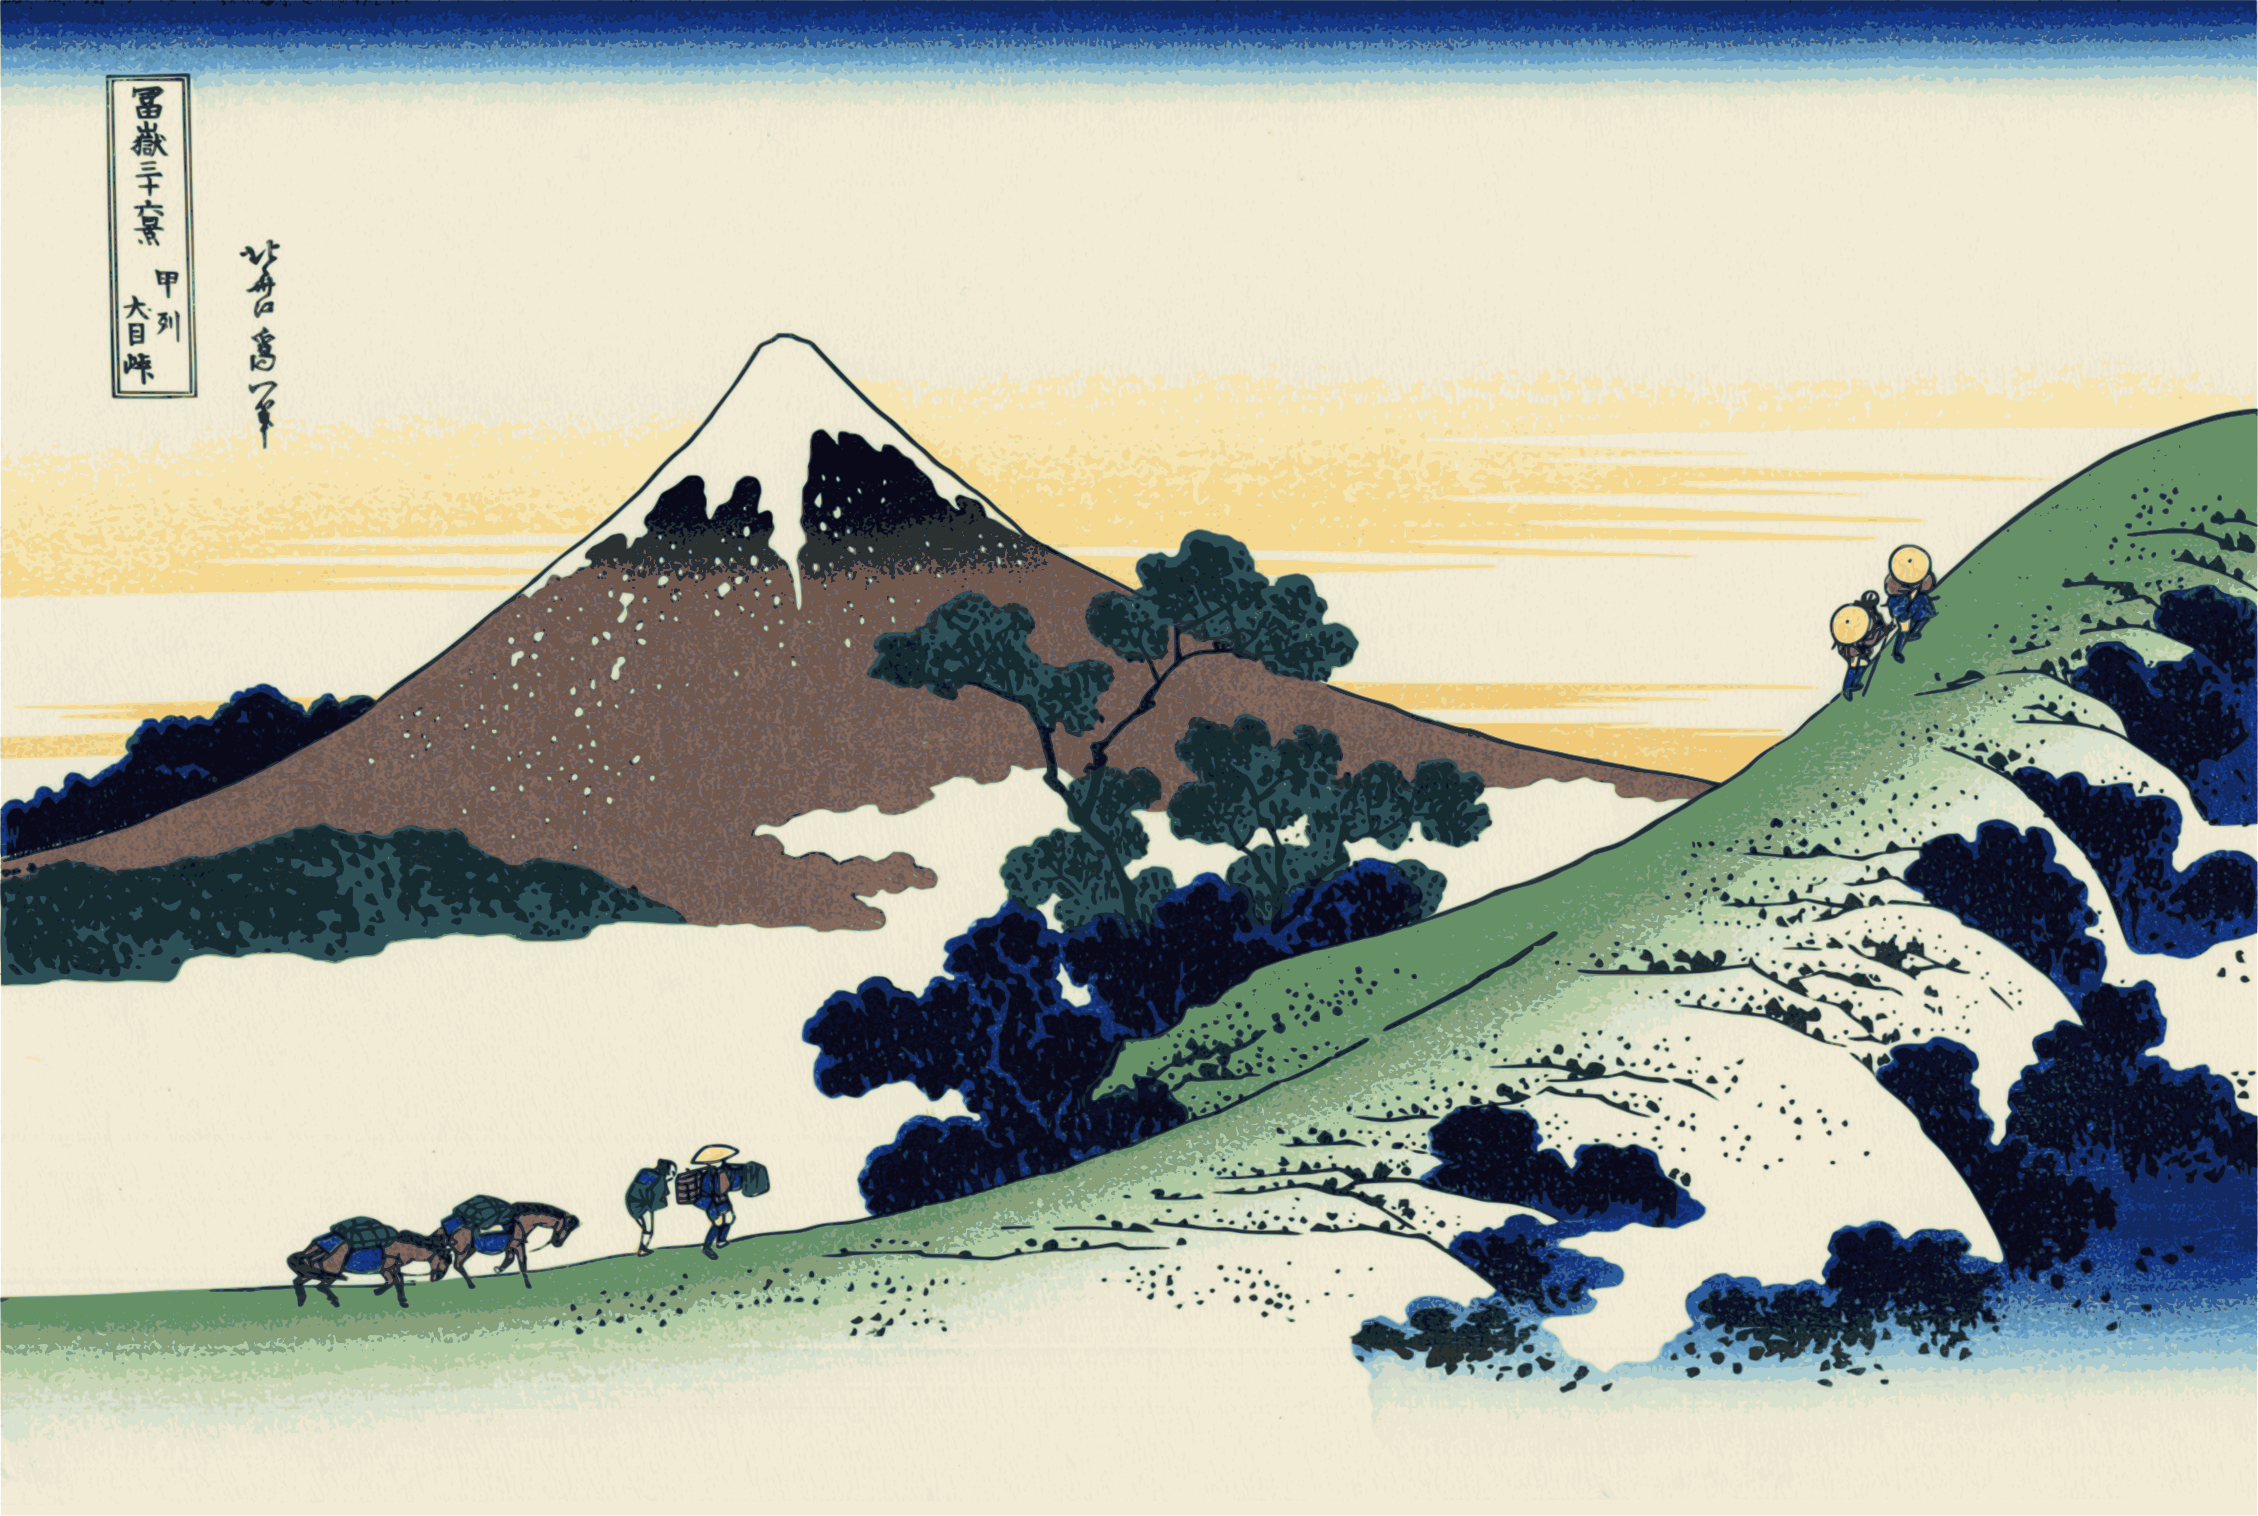 Hokusai-Mount Fuji-36-Views-41 by yamachem2